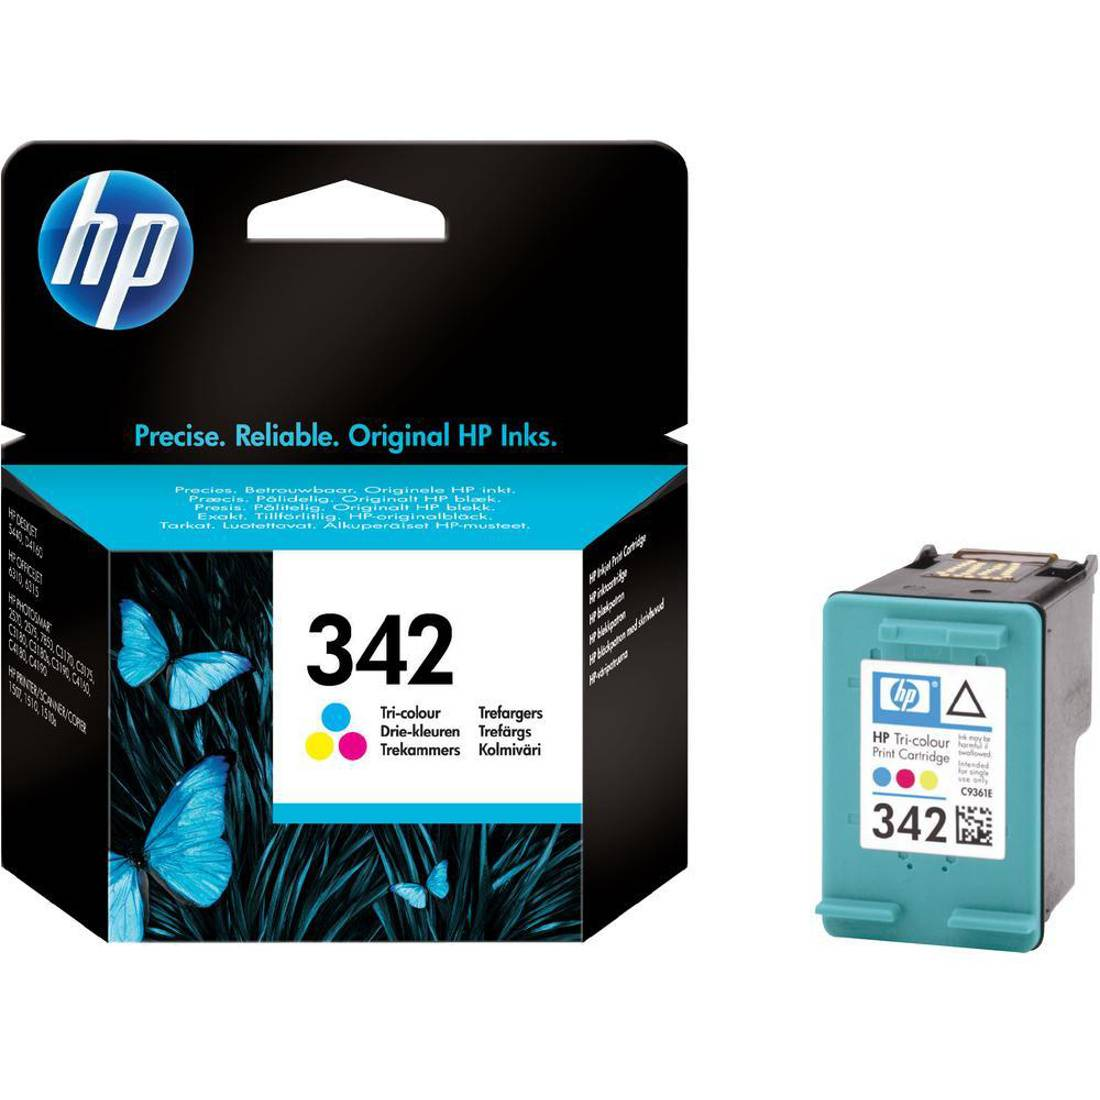 HP C9361ee No.342 Tri-Color